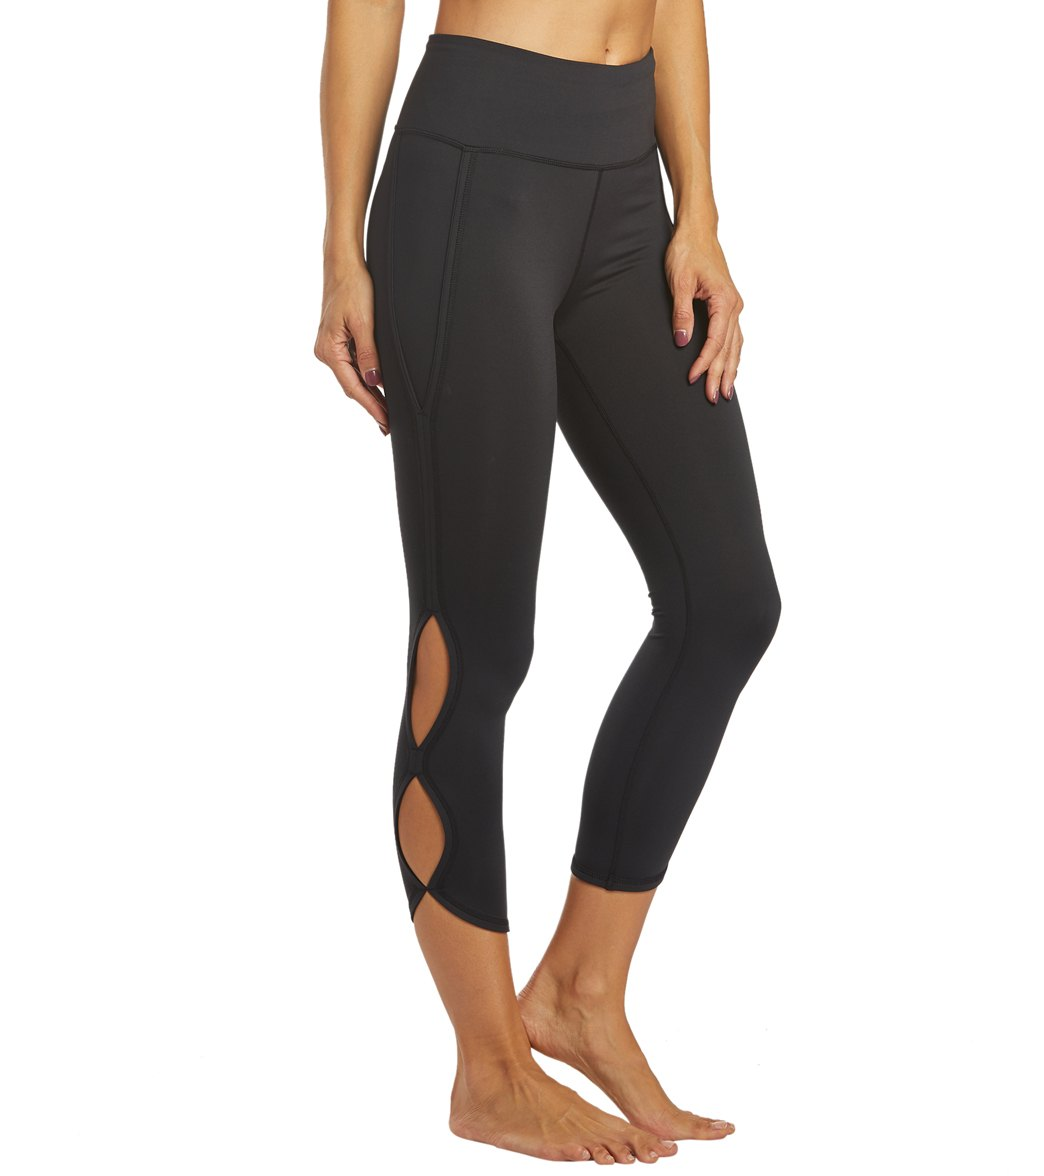 Free People Movement High Rise Infinity Yoga Leggings - Black Spandex